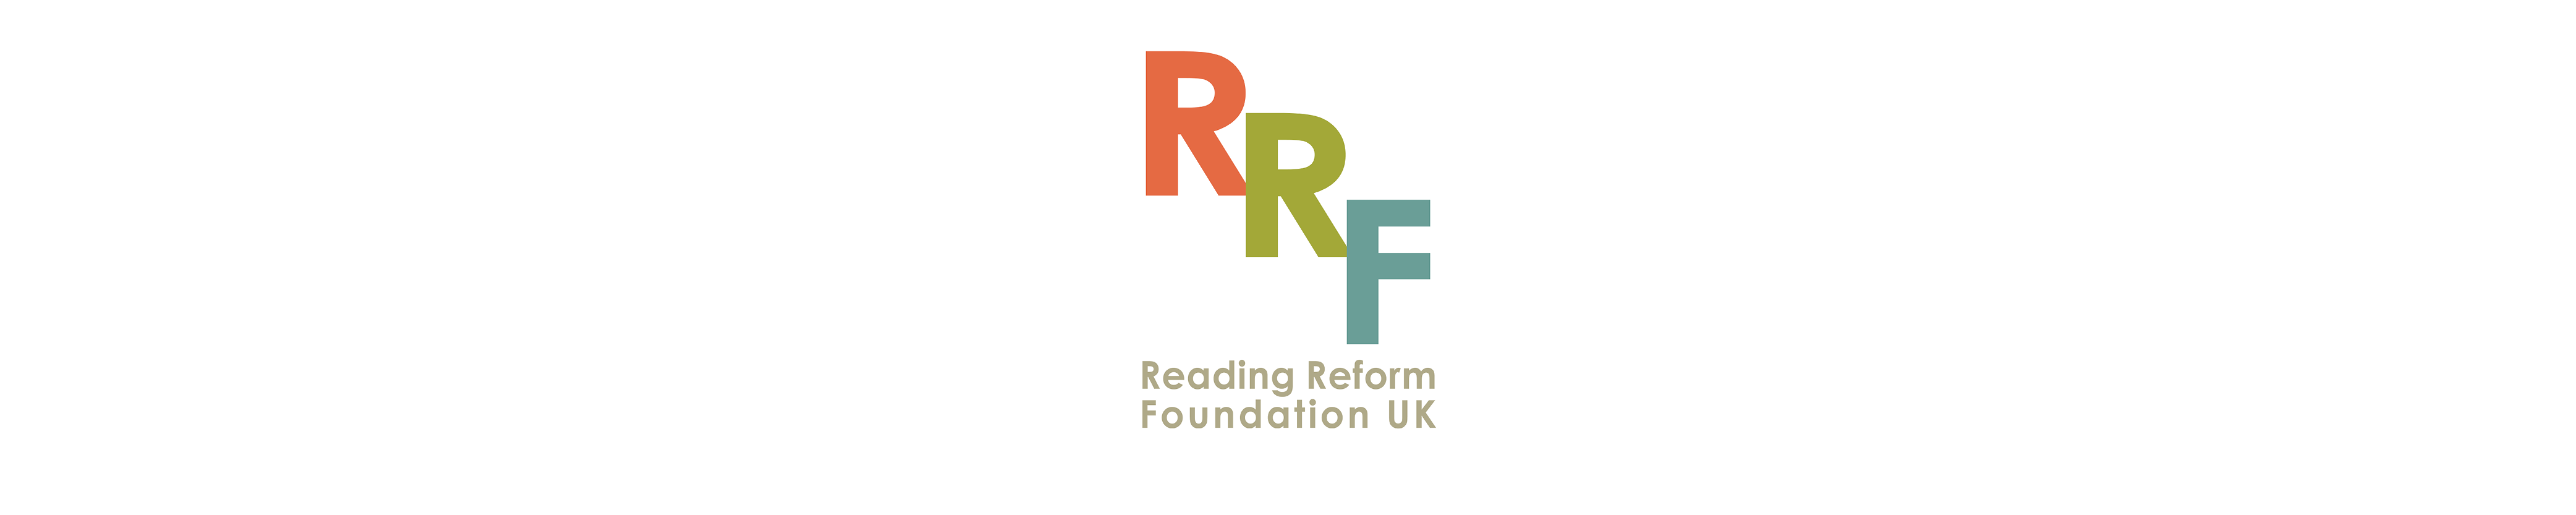 The Reading Reform Foundation